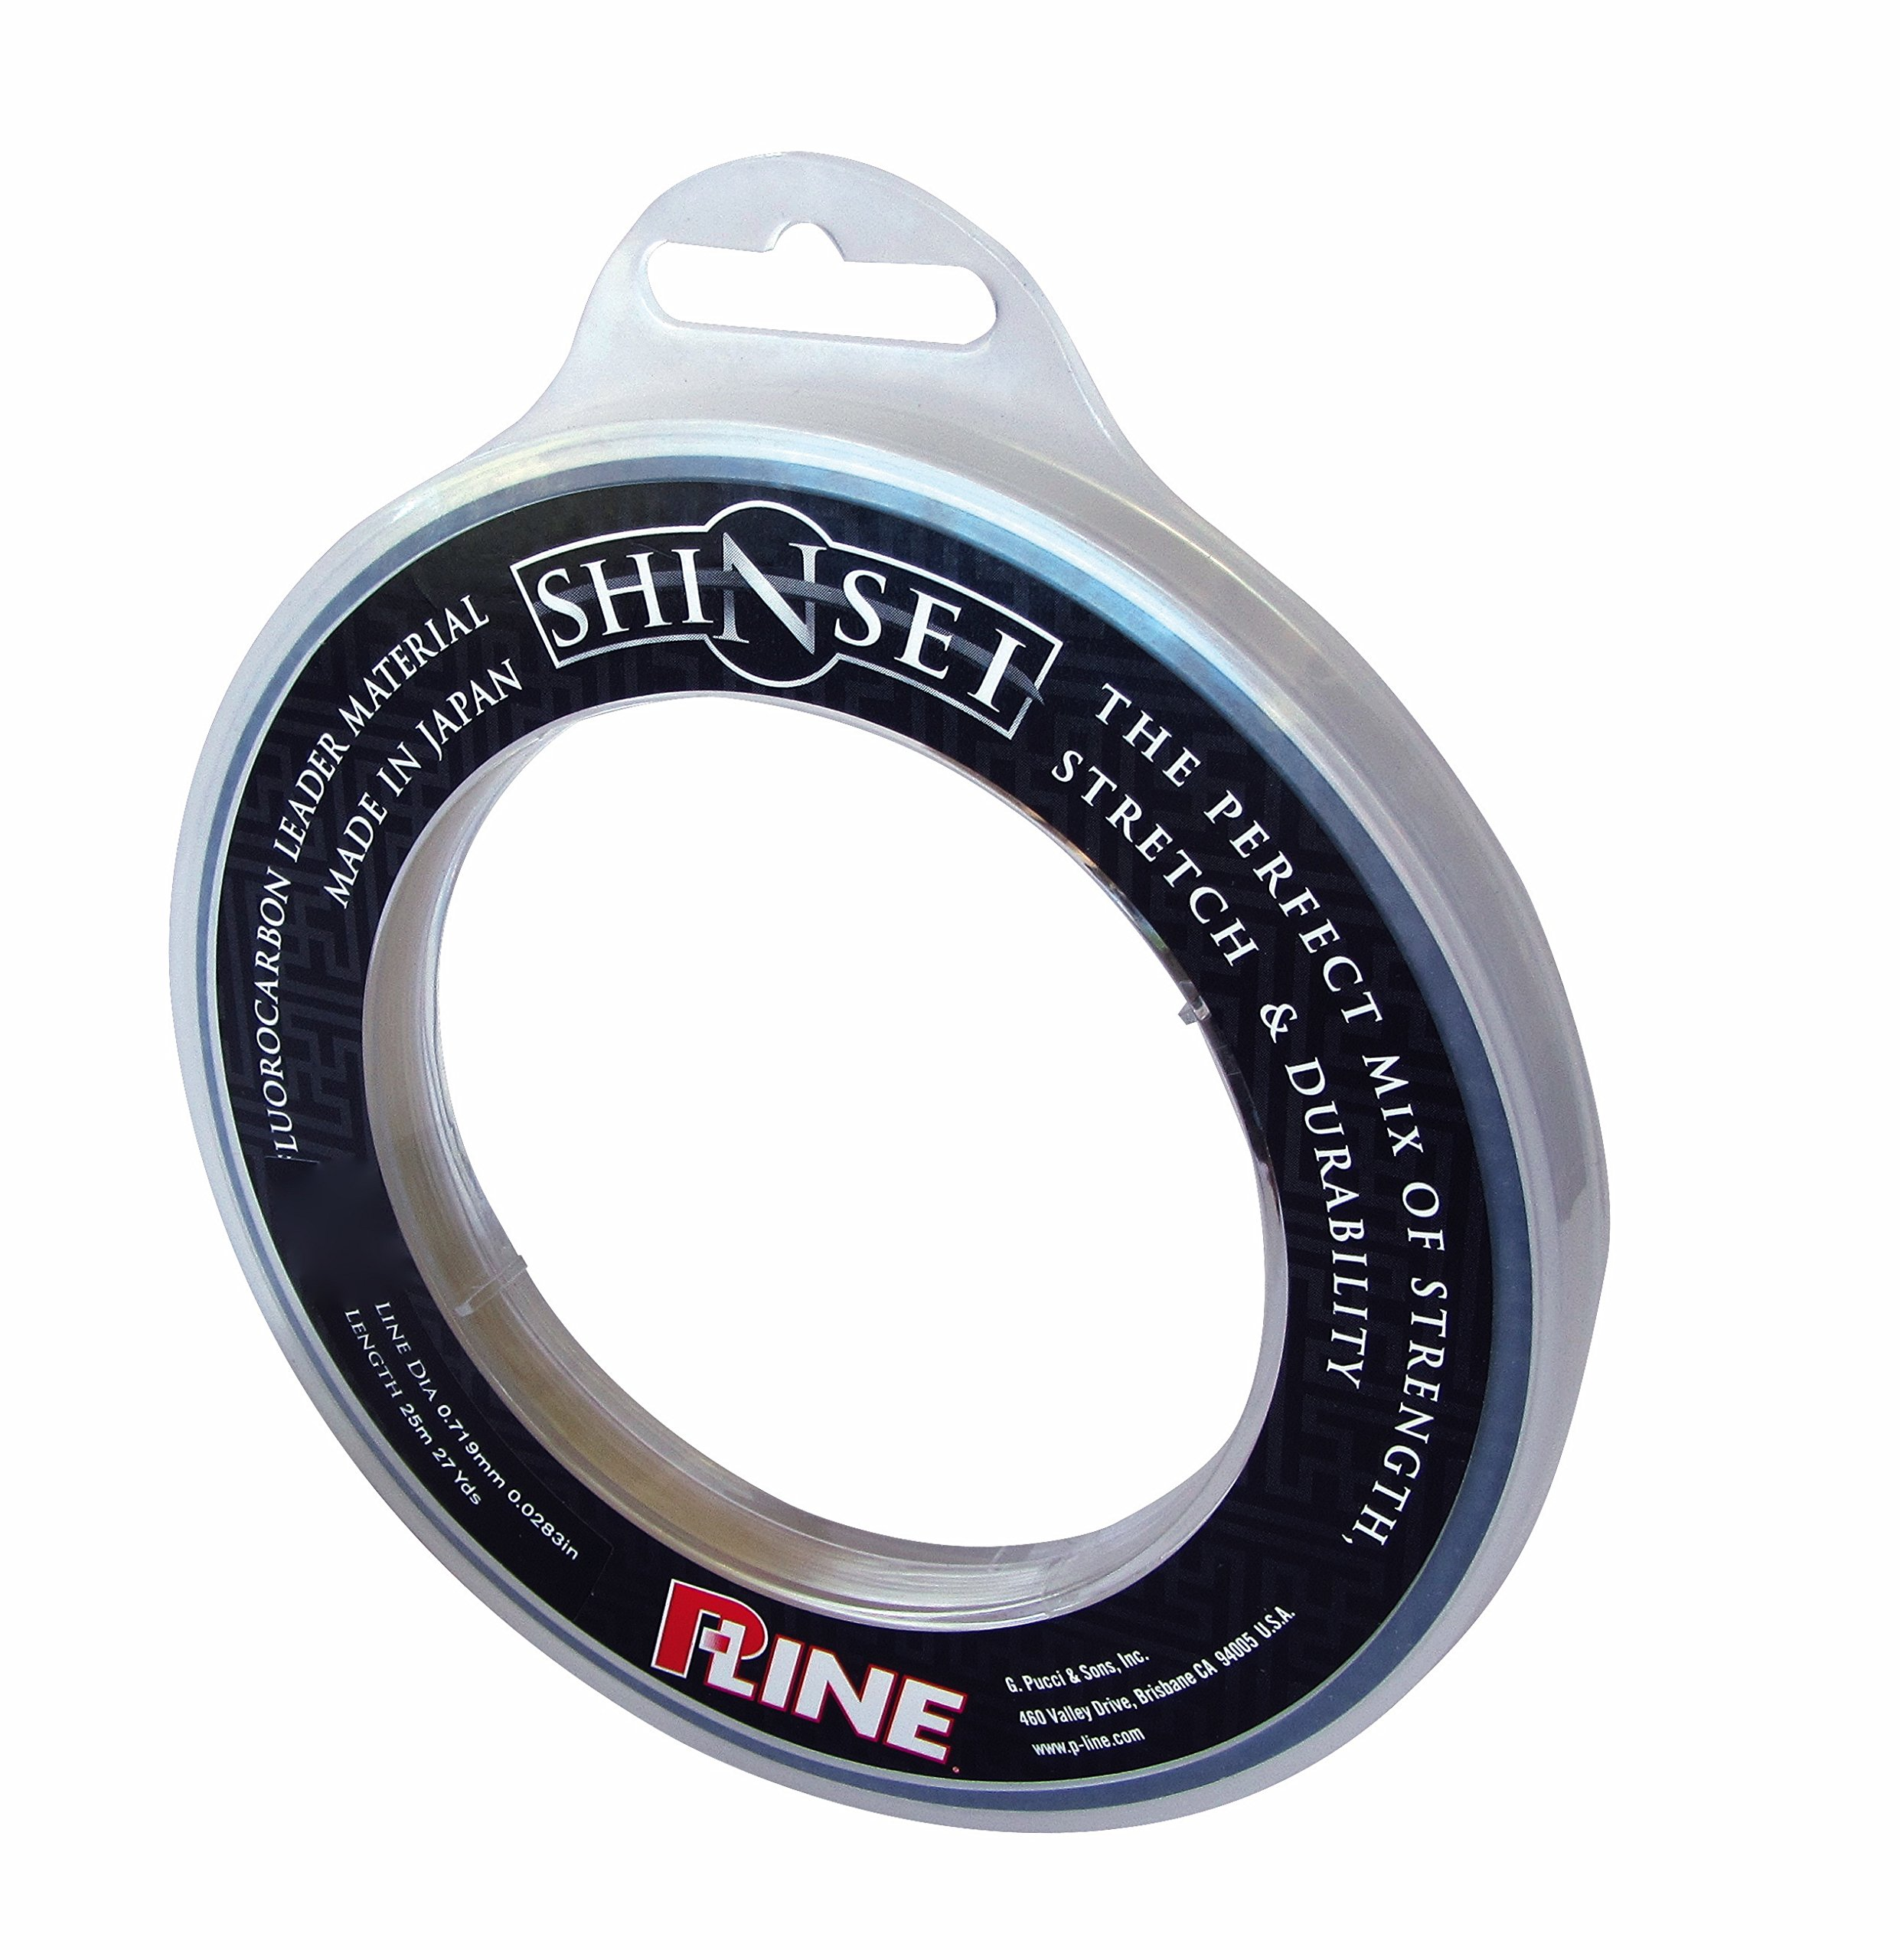 P-Line S25FC-200 Shinsei 100% Pure Fluorocarbon Leader Material, Clear by P-Line